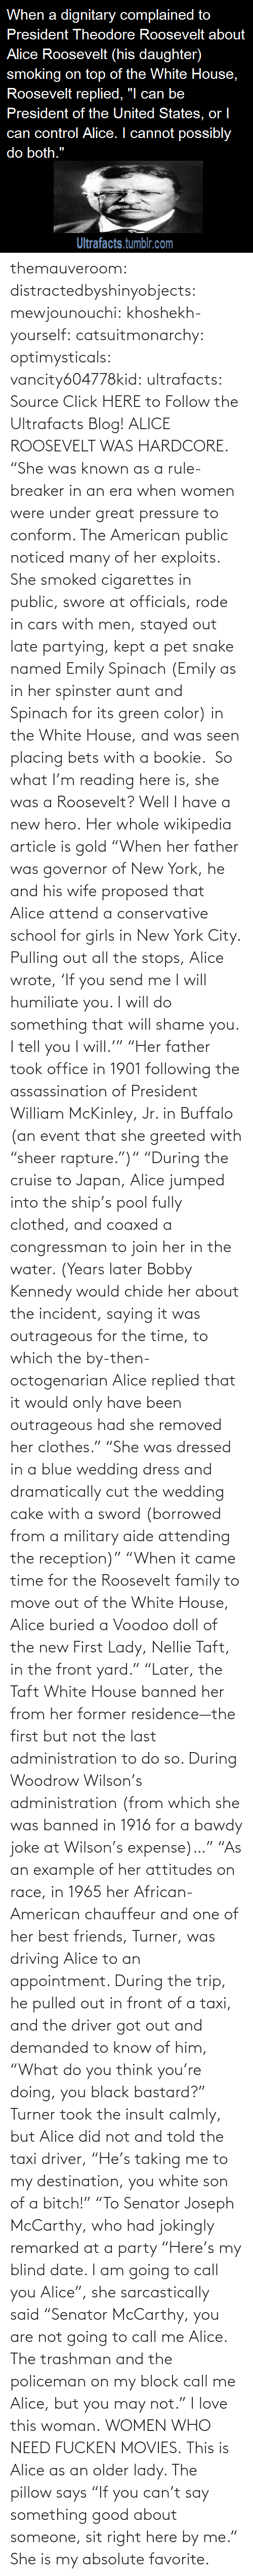 "president: themauveroom: distractedbyshinyobjects:  mewjounouchi:  khoshekh-yourself:  catsuitmonarchy:  optimysticals:  vancity604778kid:  ultrafacts:     Source Click HERE to Follow the Ultrafacts Blog!     ALICE ROOSEVELT WAS HARDCORE. ""She was known as a rule-breaker in an era when women were under great pressure to conform. The American public noticed many of her exploits. She smoked cigarettes in public, swore at officials, rode in cars with men, stayed out late partying, kept a pet snake named Emily Spinach (Emily as in her spinster aunt and Spinach for its green color) in the White House, and was seen placing bets with a bookie.    So what I'm reading here is, she was a Roosevelt?  Well I have a new hero.  Her whole wikipedia article is gold ""When her father was governor of New York, he and his wife proposed that Alice attend a conservative school for girls in New York City. Pulling out all the stops, Alice wrote, 'If you send me I will humiliate you. I will do something that will shame you. I tell you I will.'"" ""Her father took office in 1901 following the assassination of President William McKinley, Jr. in Buffalo (an event that she greeted with ""sheer rapture."")"" ""During the cruise to Japan, Alice jumped into the ship's pool fully clothed, and coaxed a congressman to join her in the water. (Years later Bobby Kennedy would chide her about the incident, saying it was outrageous for the time, to which the by-then-octogenarian Alice replied that it would only have been outrageous had she removed her clothes."" ""She was dressed in a blue wedding dress and dramatically cut the wedding cake with a sword (borrowed from a military aide attending the reception)"" ""When it came time for the Roosevelt family to move out of the White House, Alice buried a Voodoo doll of the new First Lady, Nellie Taft, in the front yard."" ""Later, the Taft White House banned her from her former residence—the first but not the last administration to do so. During Woodrow Wilson's administration (from which she was banned in 1916 for a bawdy joke at Wilson's expense)…"" ""As an example of her attitudes on race, in 1965 her African-American chauffeur and one of her best friends, Turner, was driving Alice to an appointment. During the trip, he pulled out in front of a taxi, and the driver got out and demanded to know of him, ""What do you think you're doing, you black bastard?"" Turner took the insult calmly, but Alice did not and told the taxi driver, ""He's taking me to my destination, you white son of a bitch!"" ""To Senator Joseph McCarthy, who had jokingly remarked at a party ""Here's my blind date. I am going to call you Alice"", she sarcastically said ""Senator McCarthy, you are not going to call me Alice. The trashman and the policeman on my block call me Alice, but you may not.""  I love this woman.  WOMEN WHO NEED FUCKEN MOVIES.   This is Alice as an older lady. The pillow says ""If you can't say something good about someone, sit right here by me.""  She is my absolute favorite."